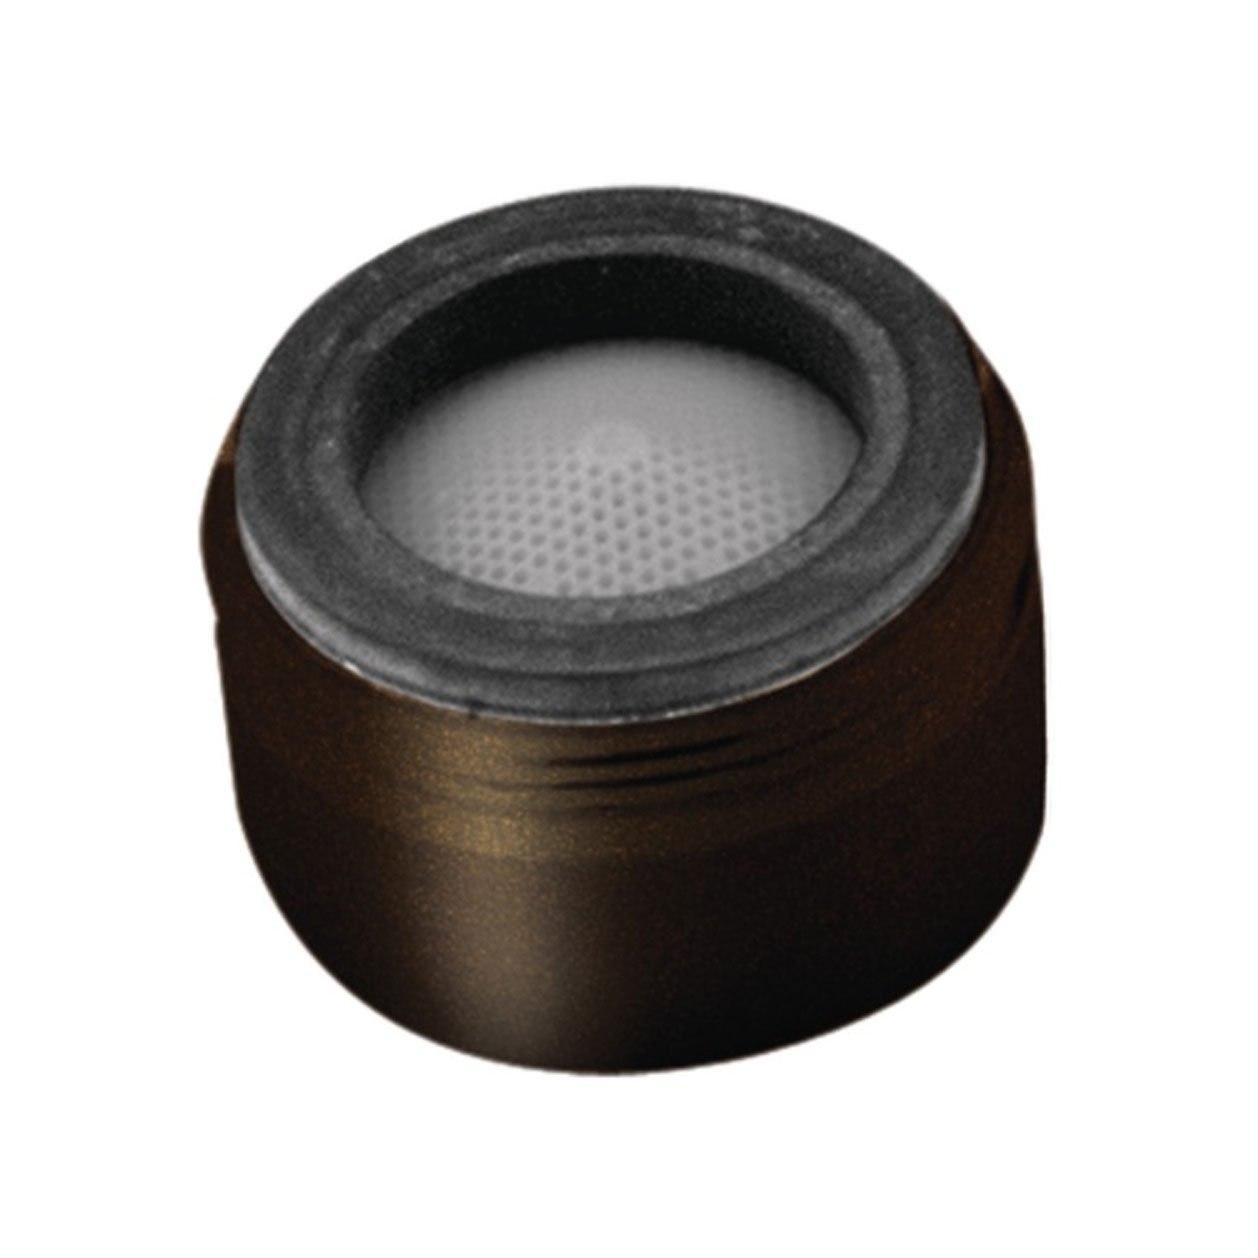 Cleveland Faucets 44003OWB Bathroom Faucet Aerator Kit, Old World Bronze